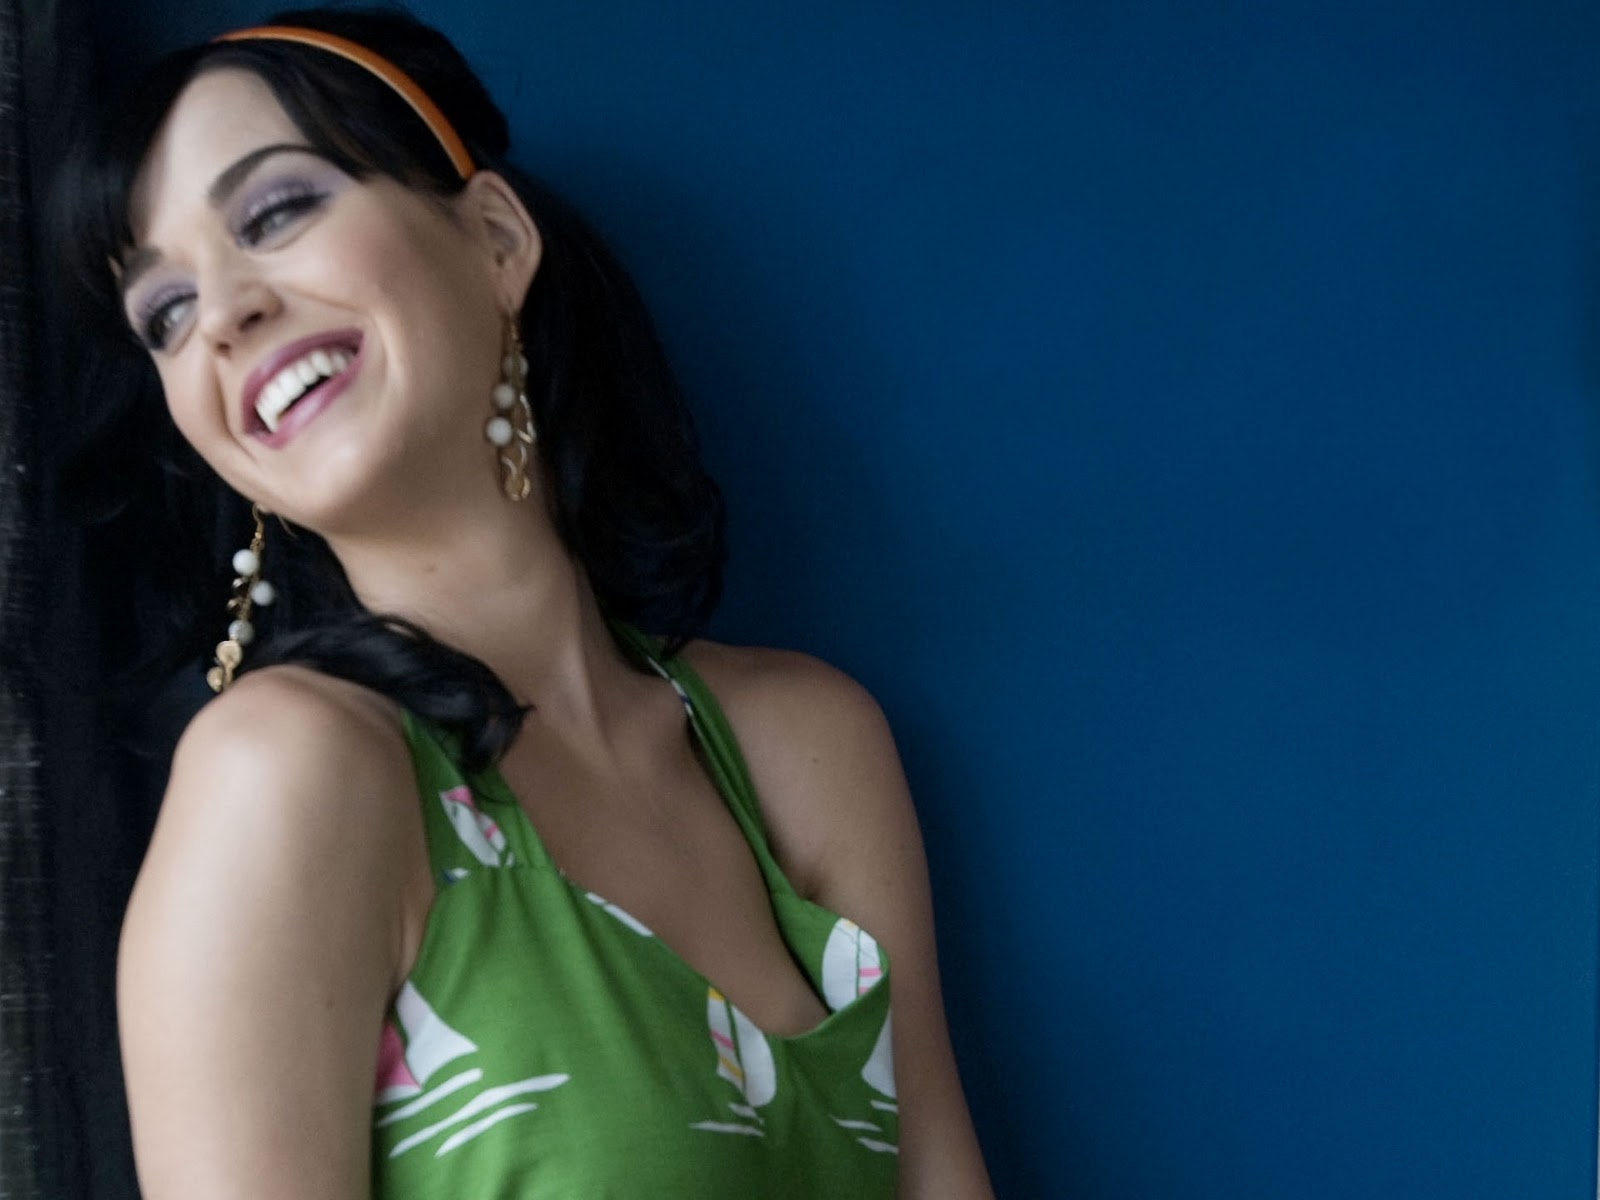 Models Biography: Katy Perry Biography - Katy Perry Hot ...